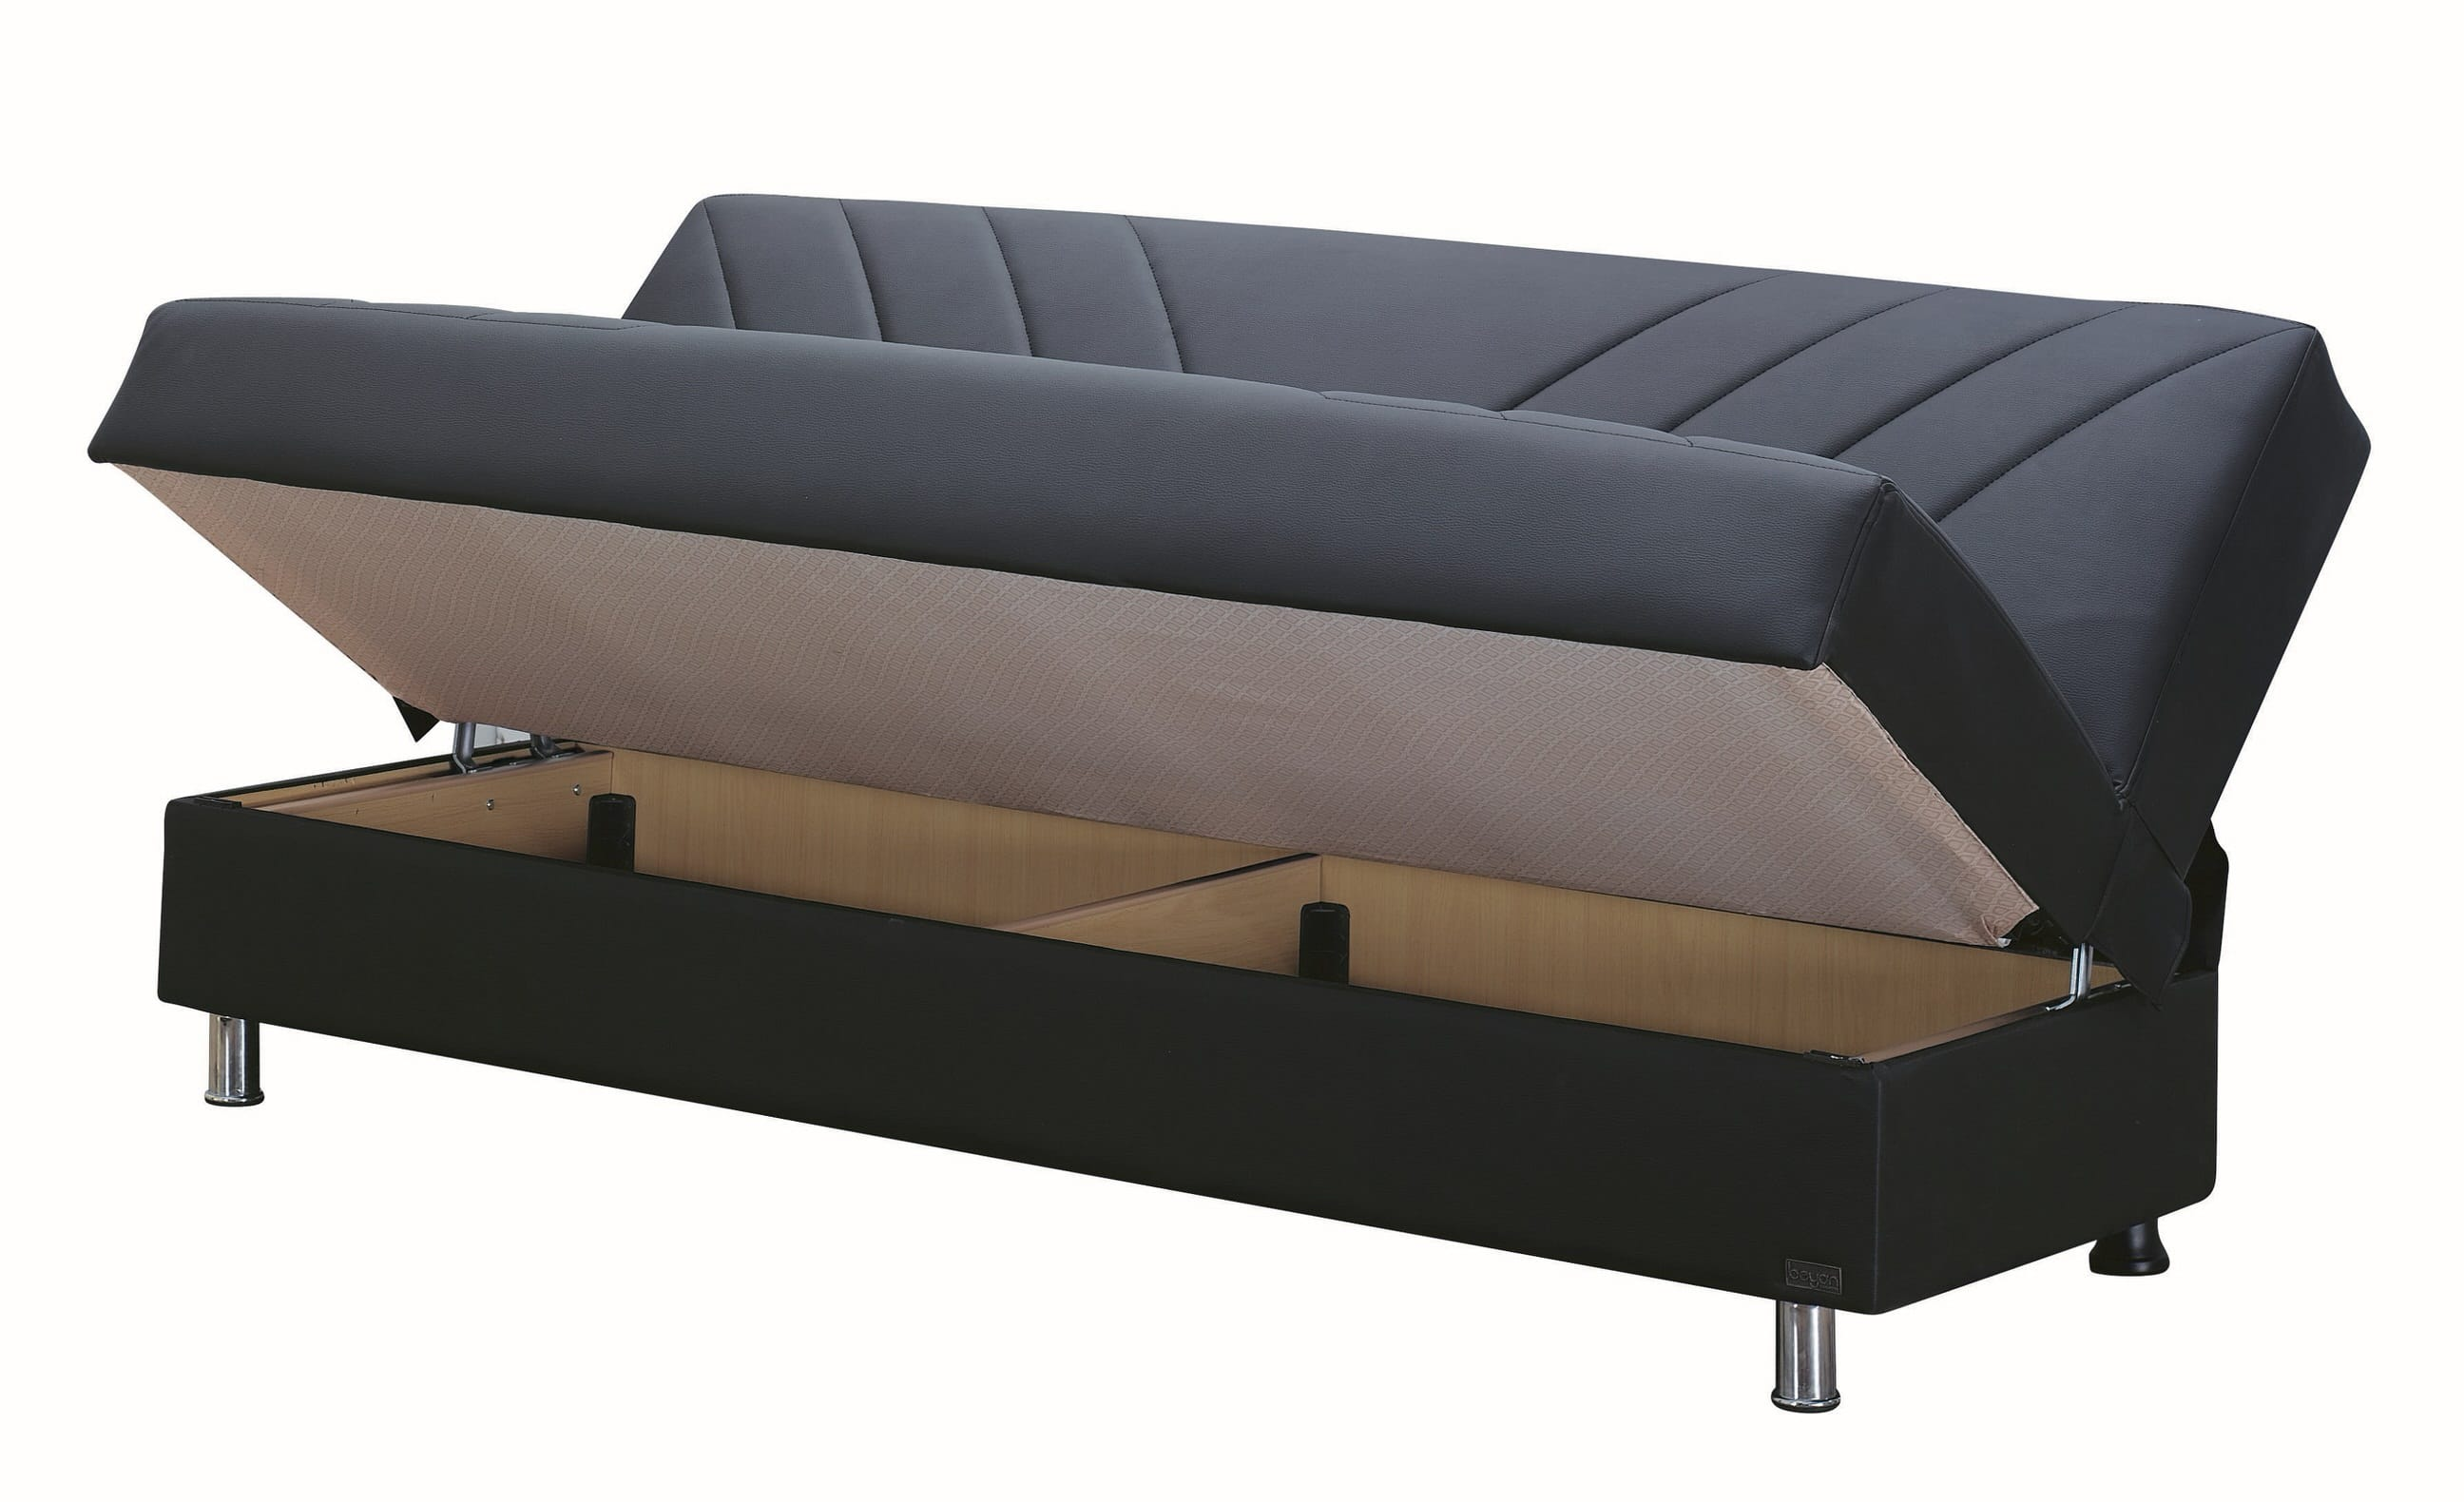 empire furniture sofa kelly wearstler halifax black leather bed by usa